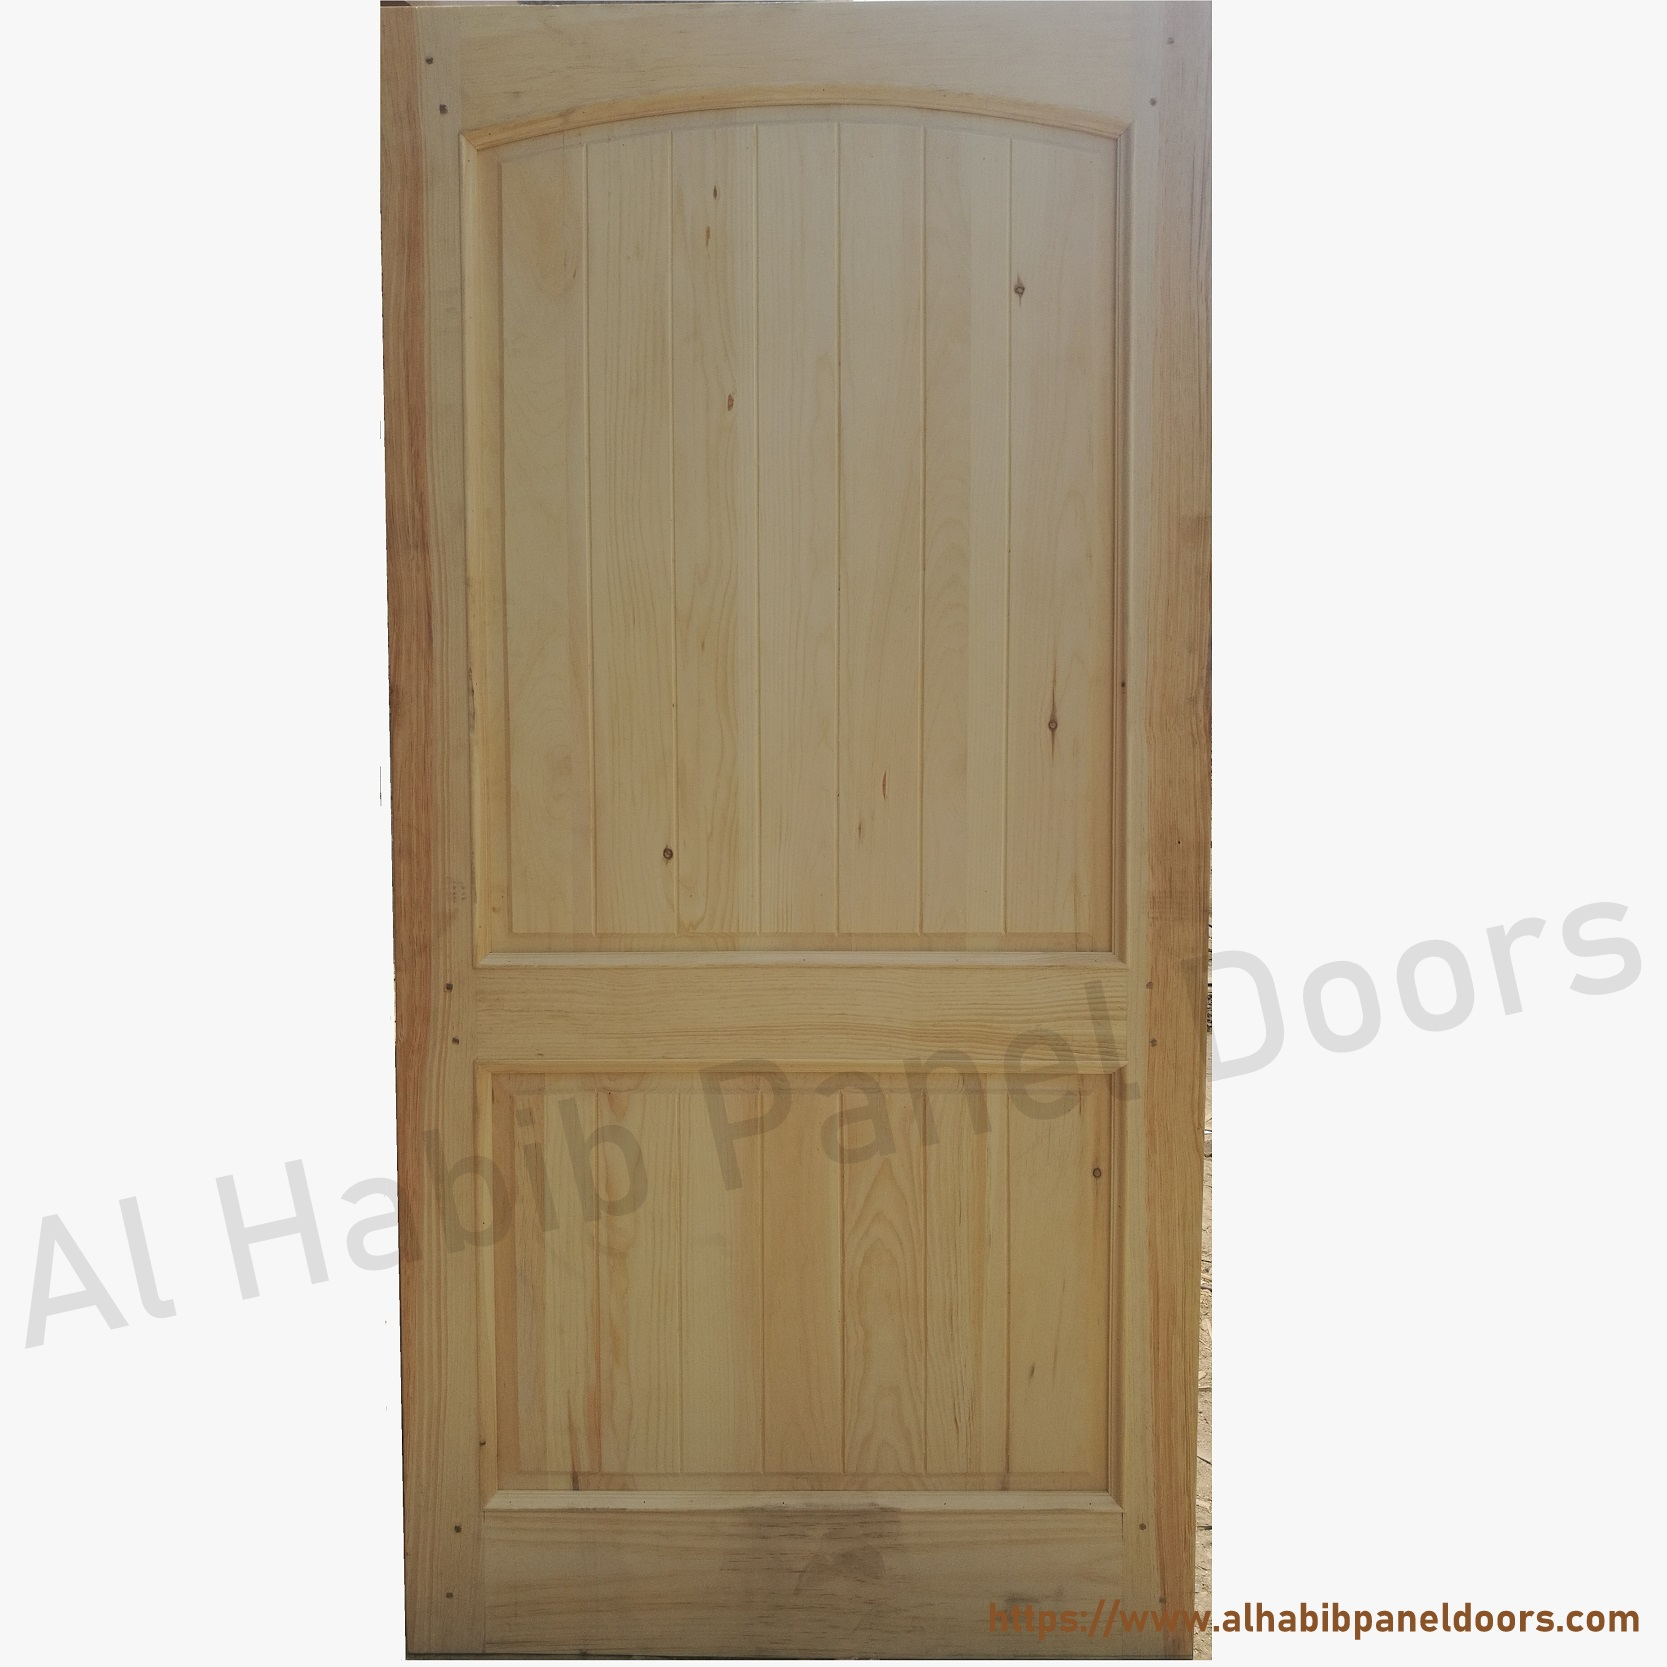 Solid Wood Door Solid Wood Doors Al Habib Panel Doors